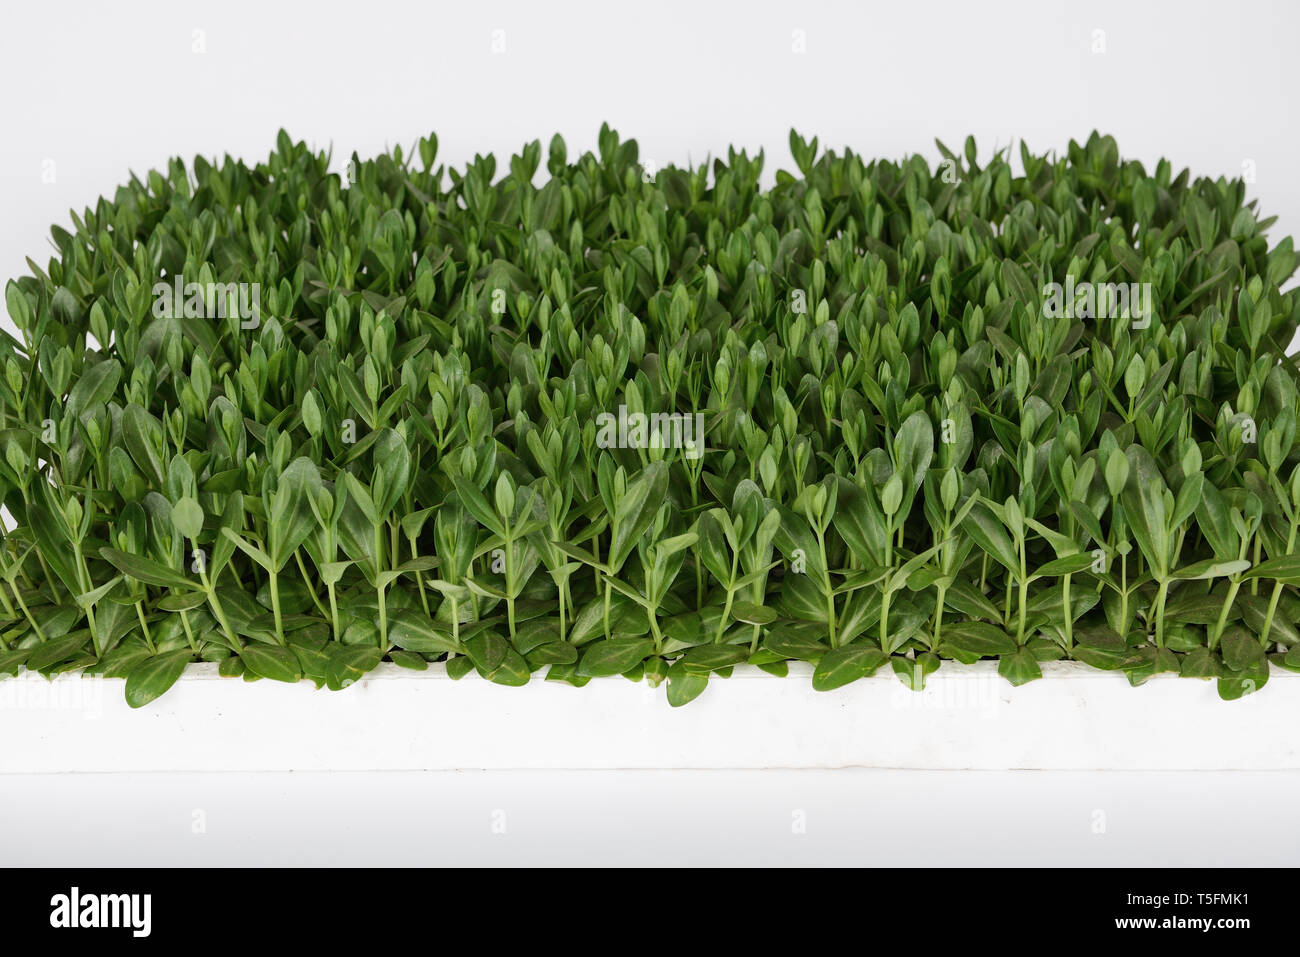 Lisianthus (Eustoma Grandiflorum) seedlings plants for professional cut flowers production in greenhouse - Stock Image